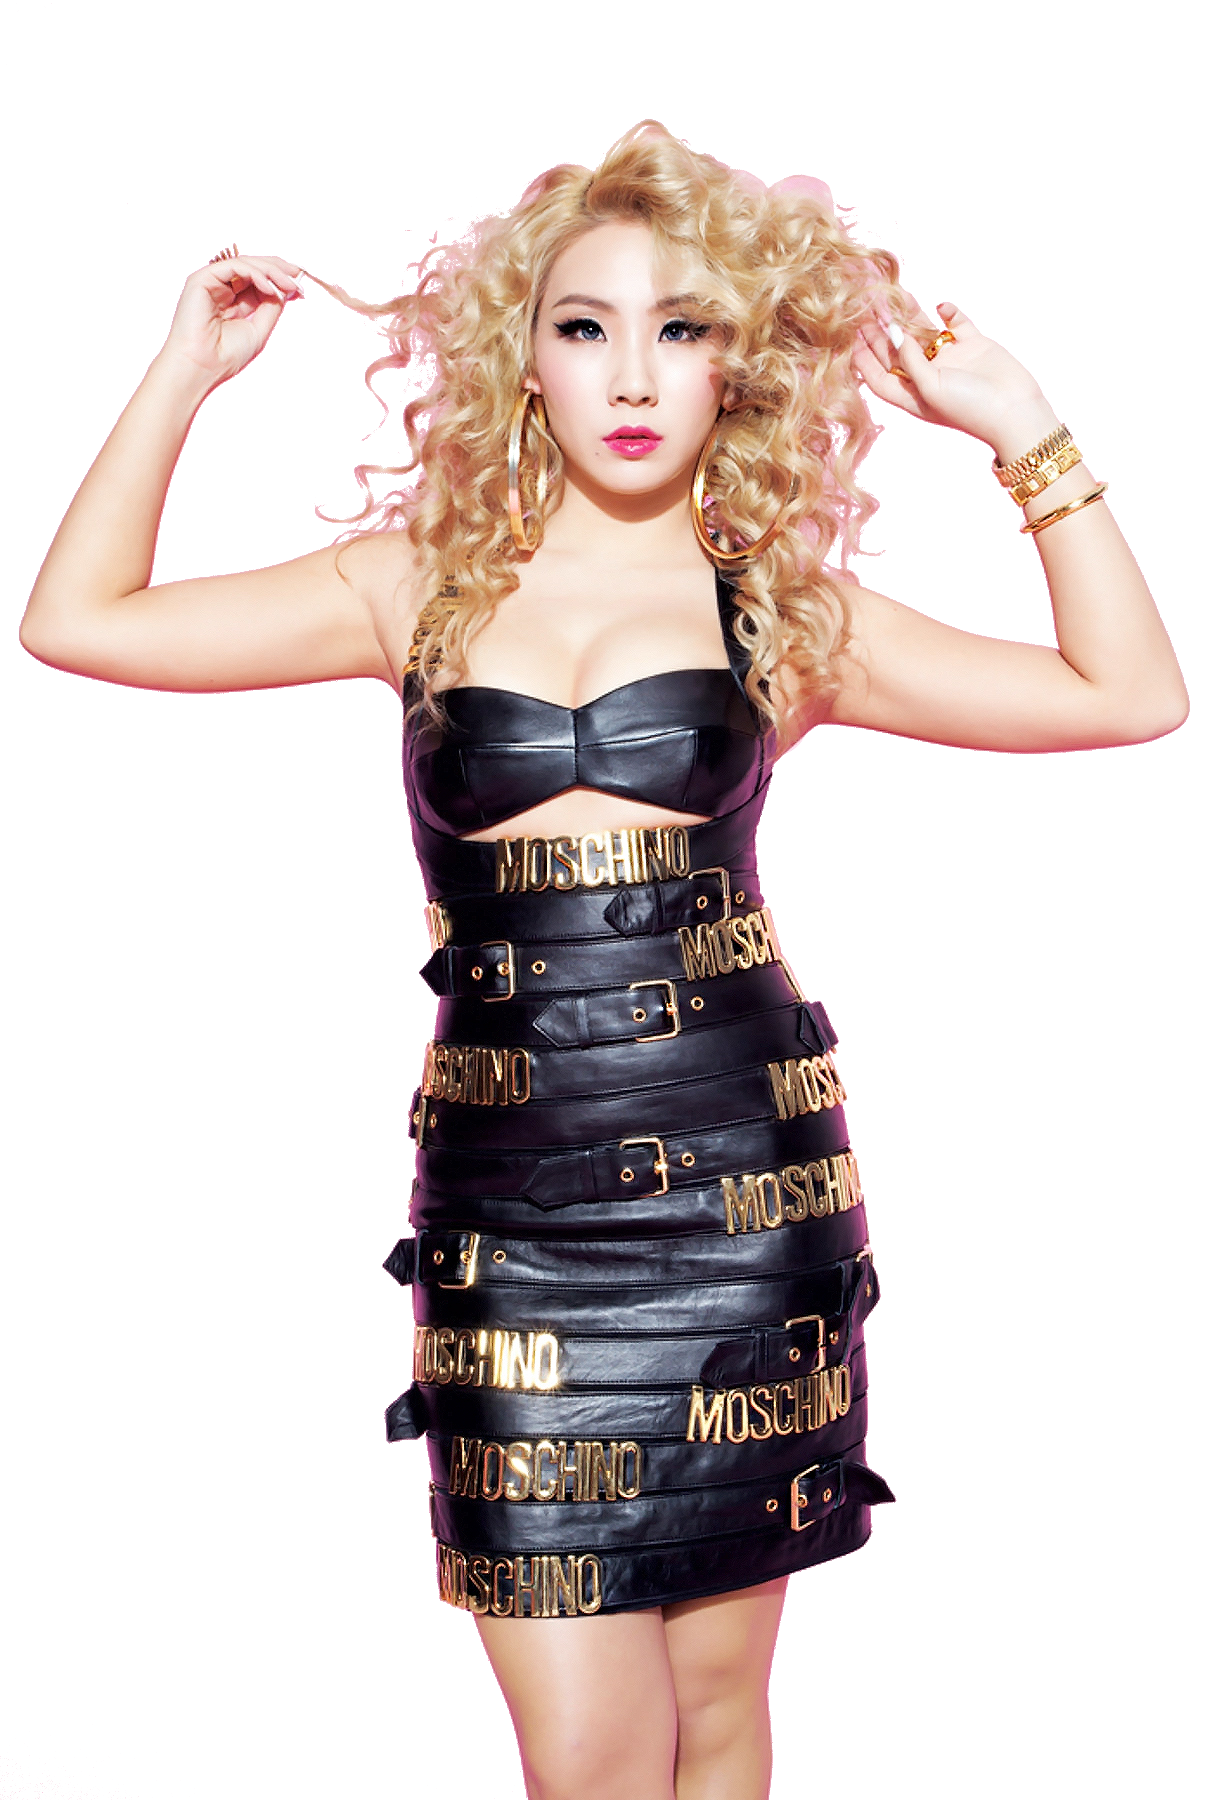 cl wallpaper 2ne1